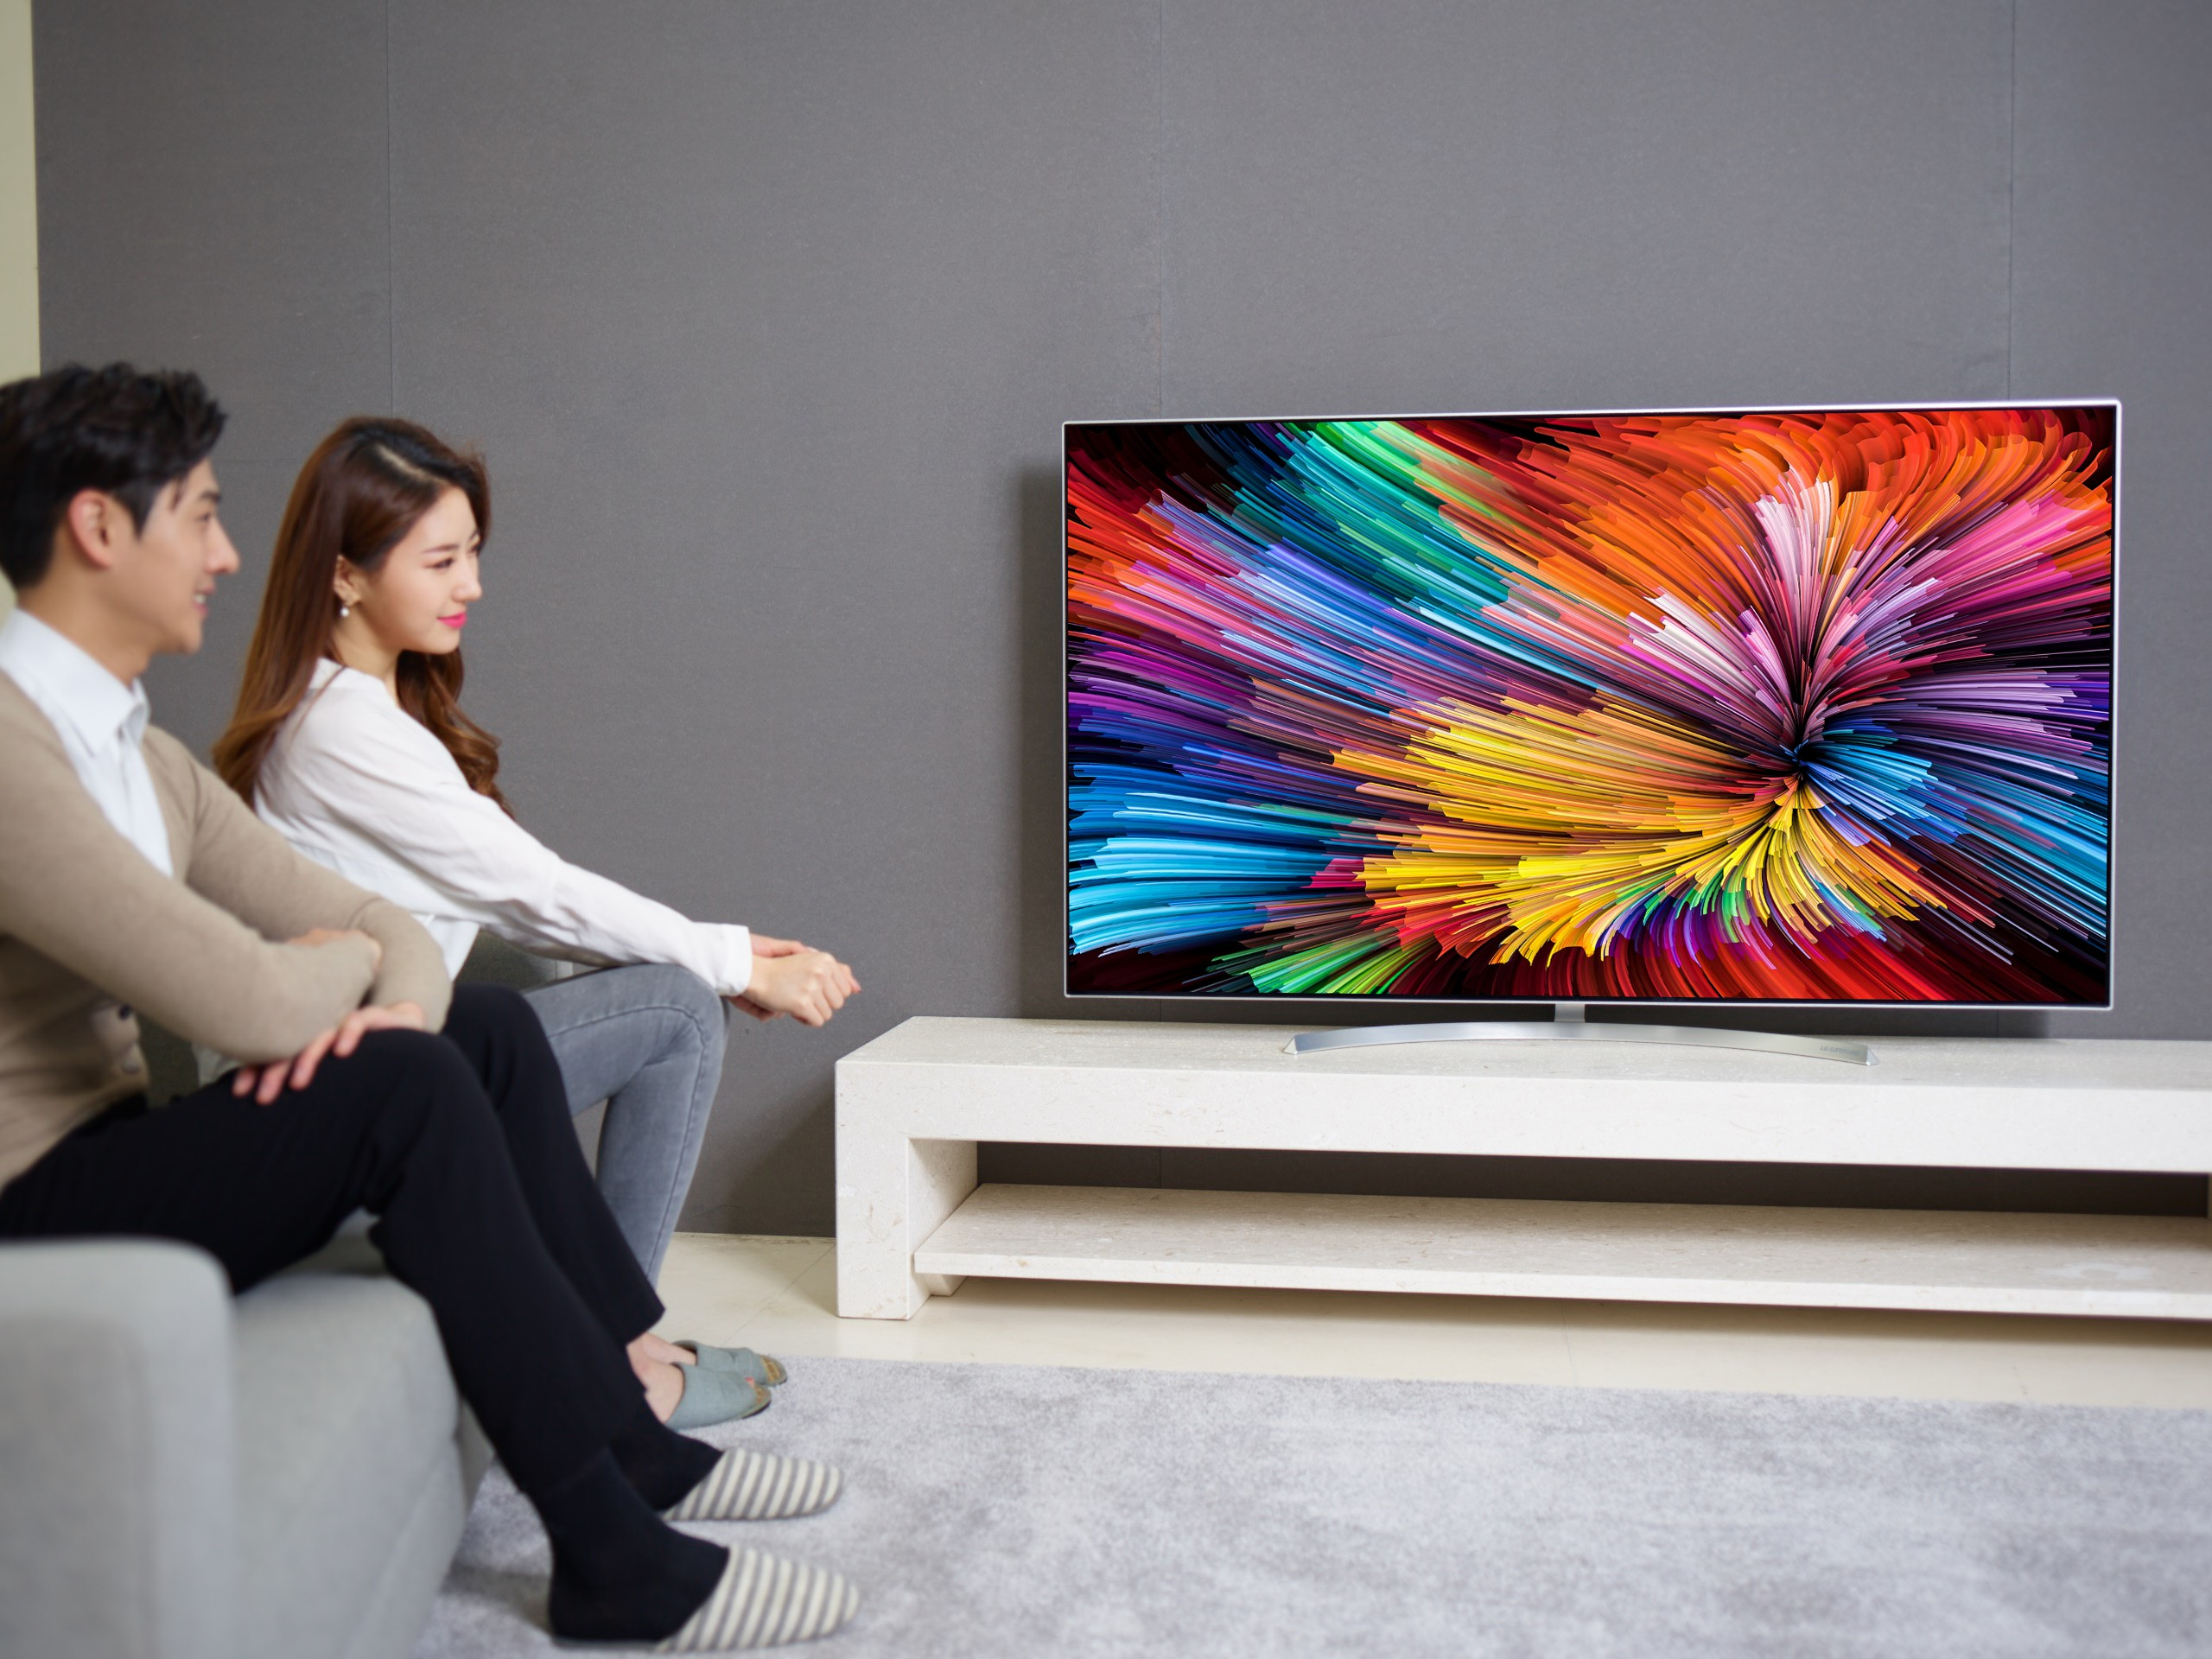 The other view of a couple sitting on a couch watching the LG SUPER UHD TV (model SJ95)